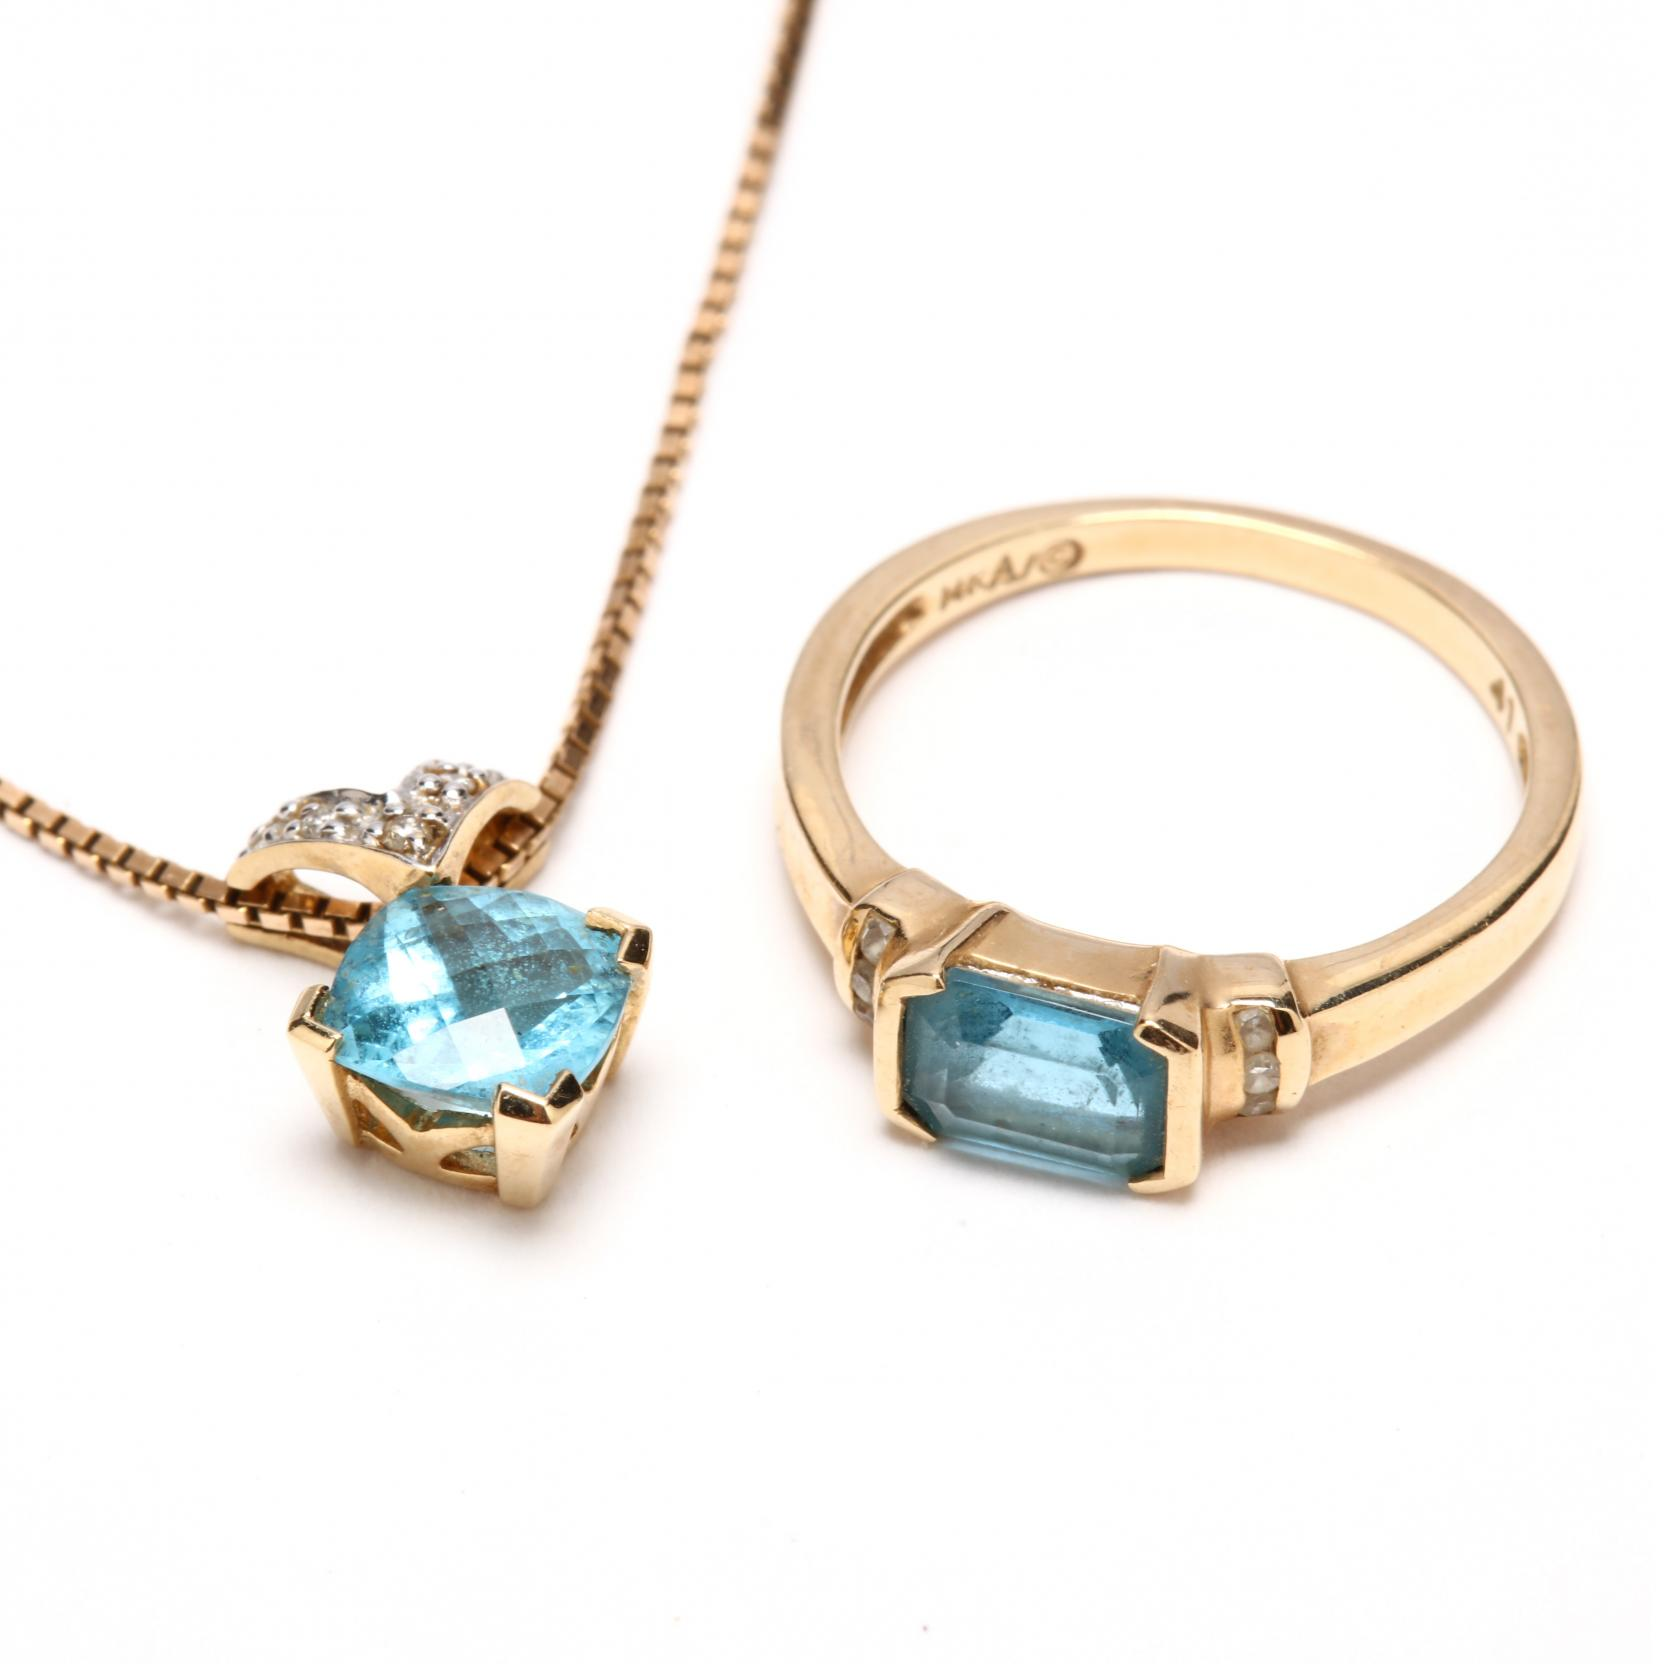 14kt-blue-topaz-and-diamond-pendant-necklace-and-ring